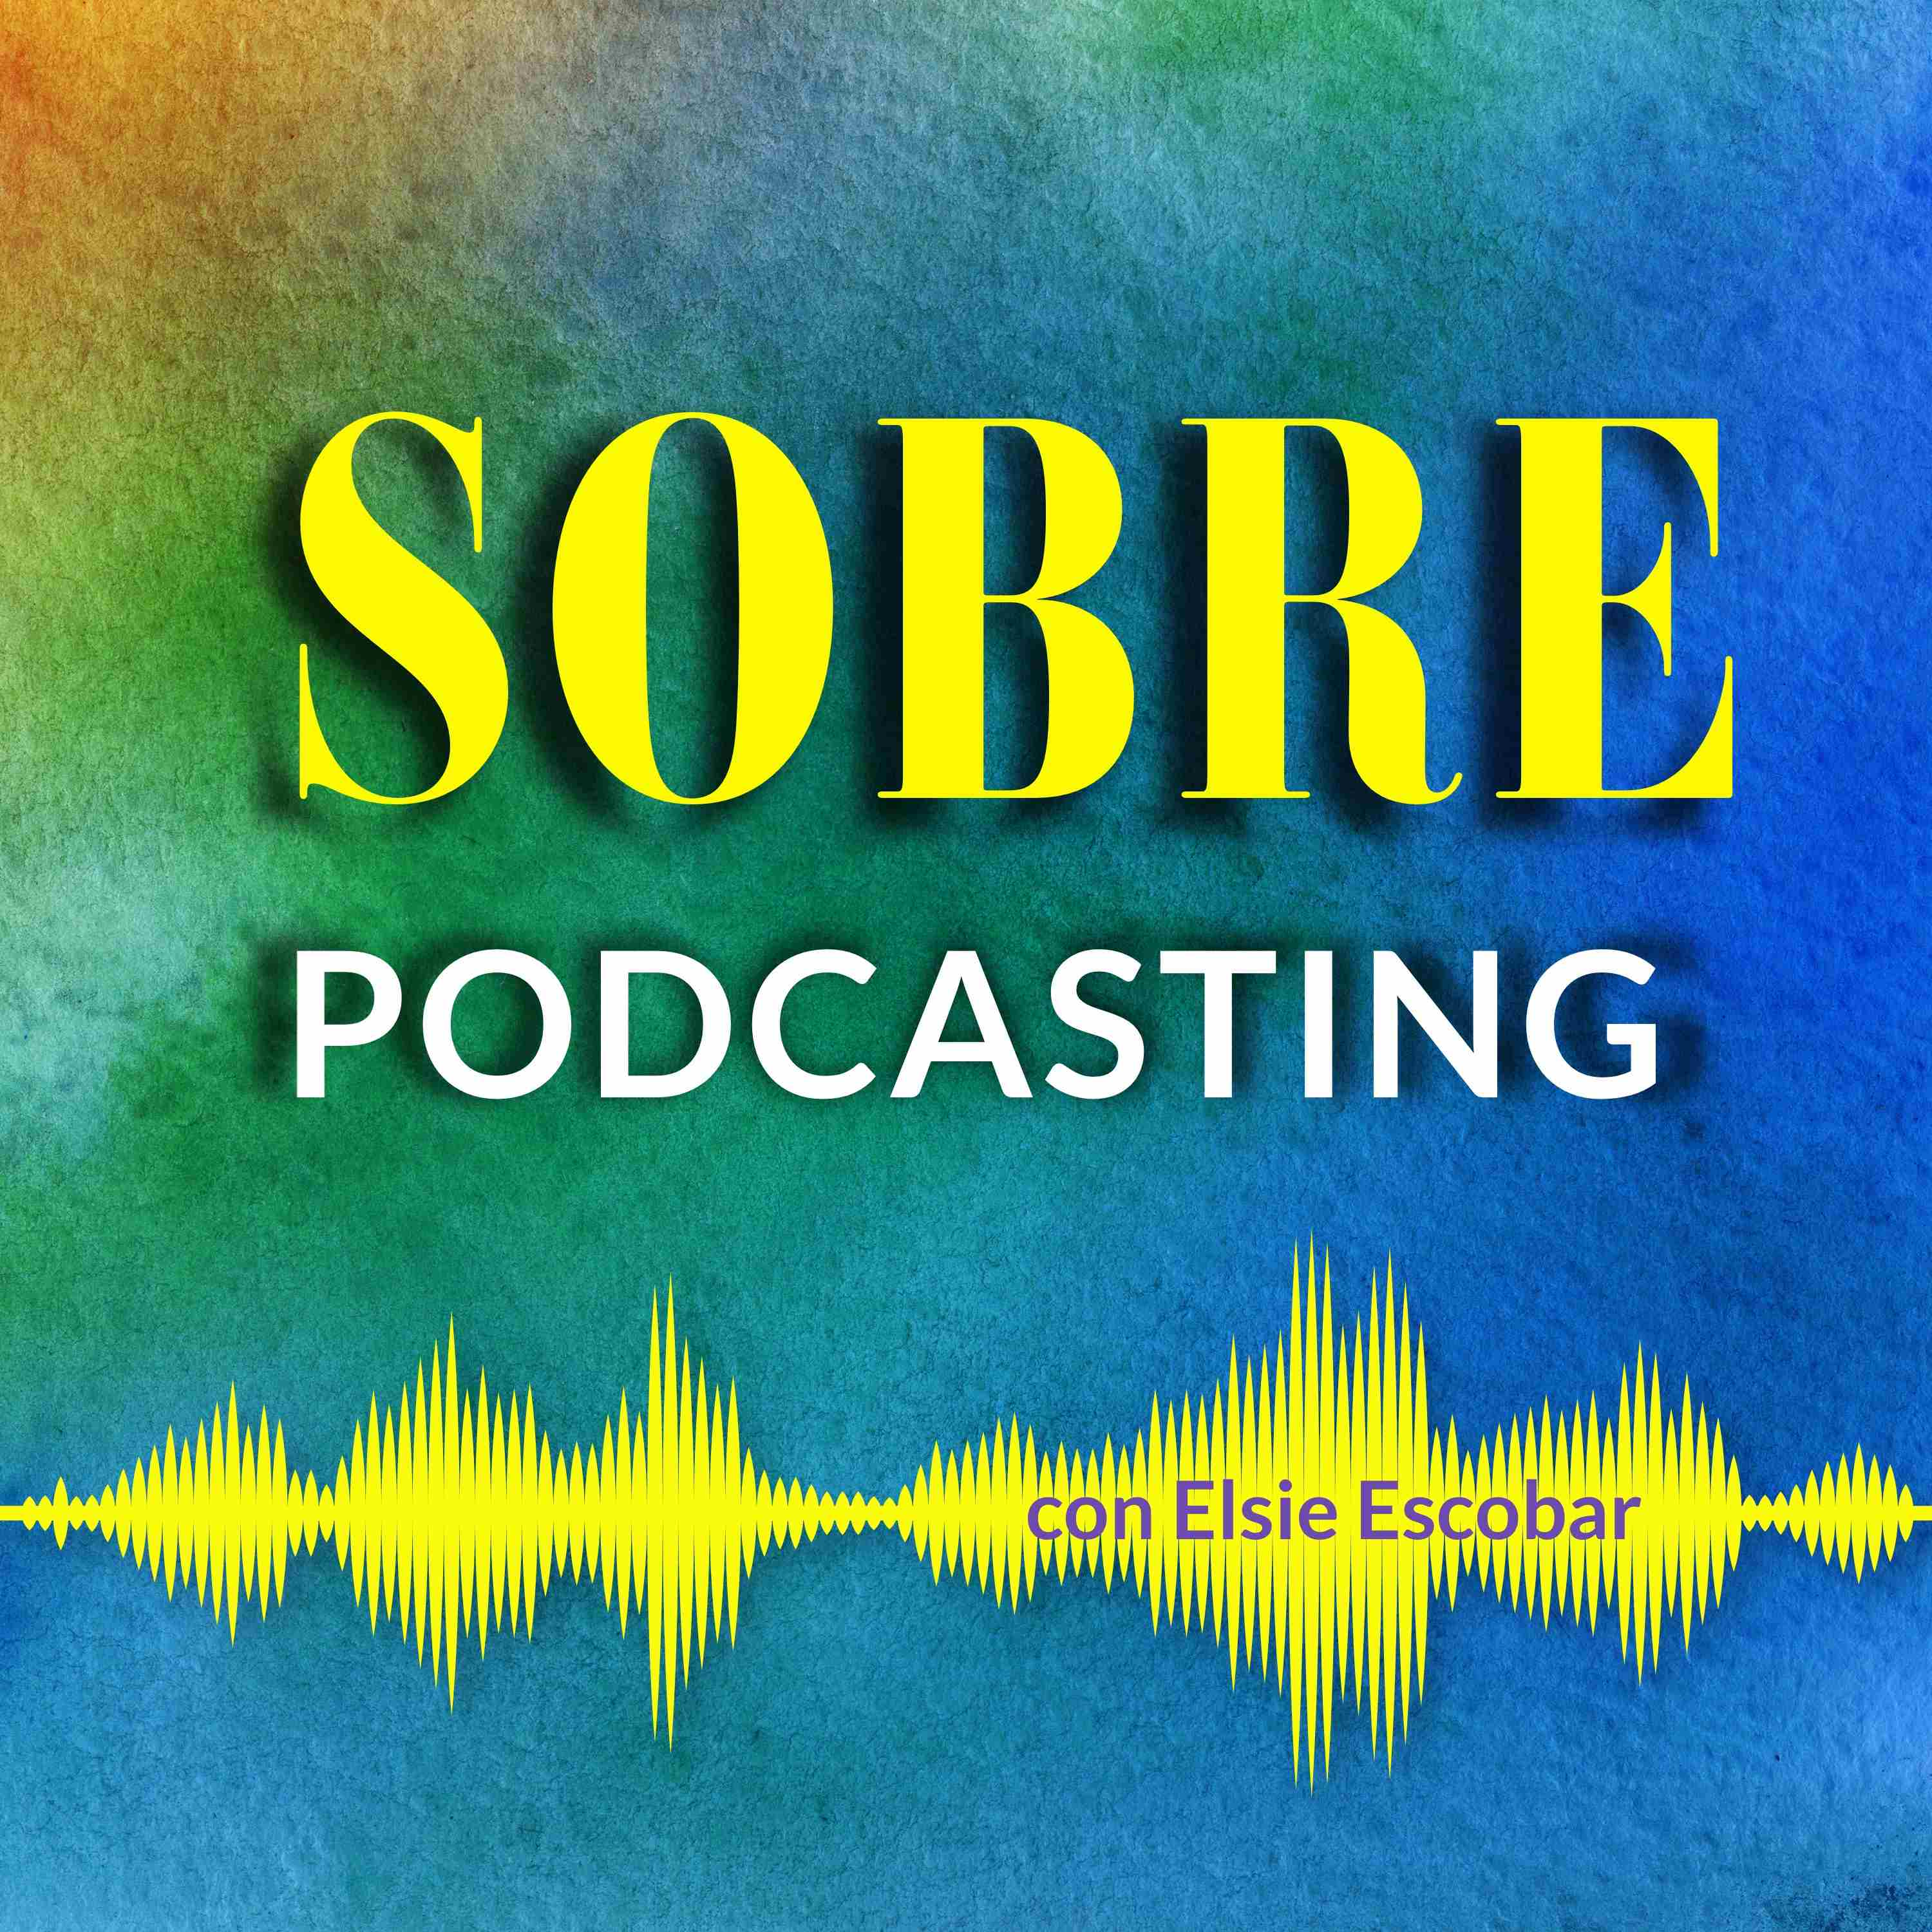 Sobre Podcasting show art